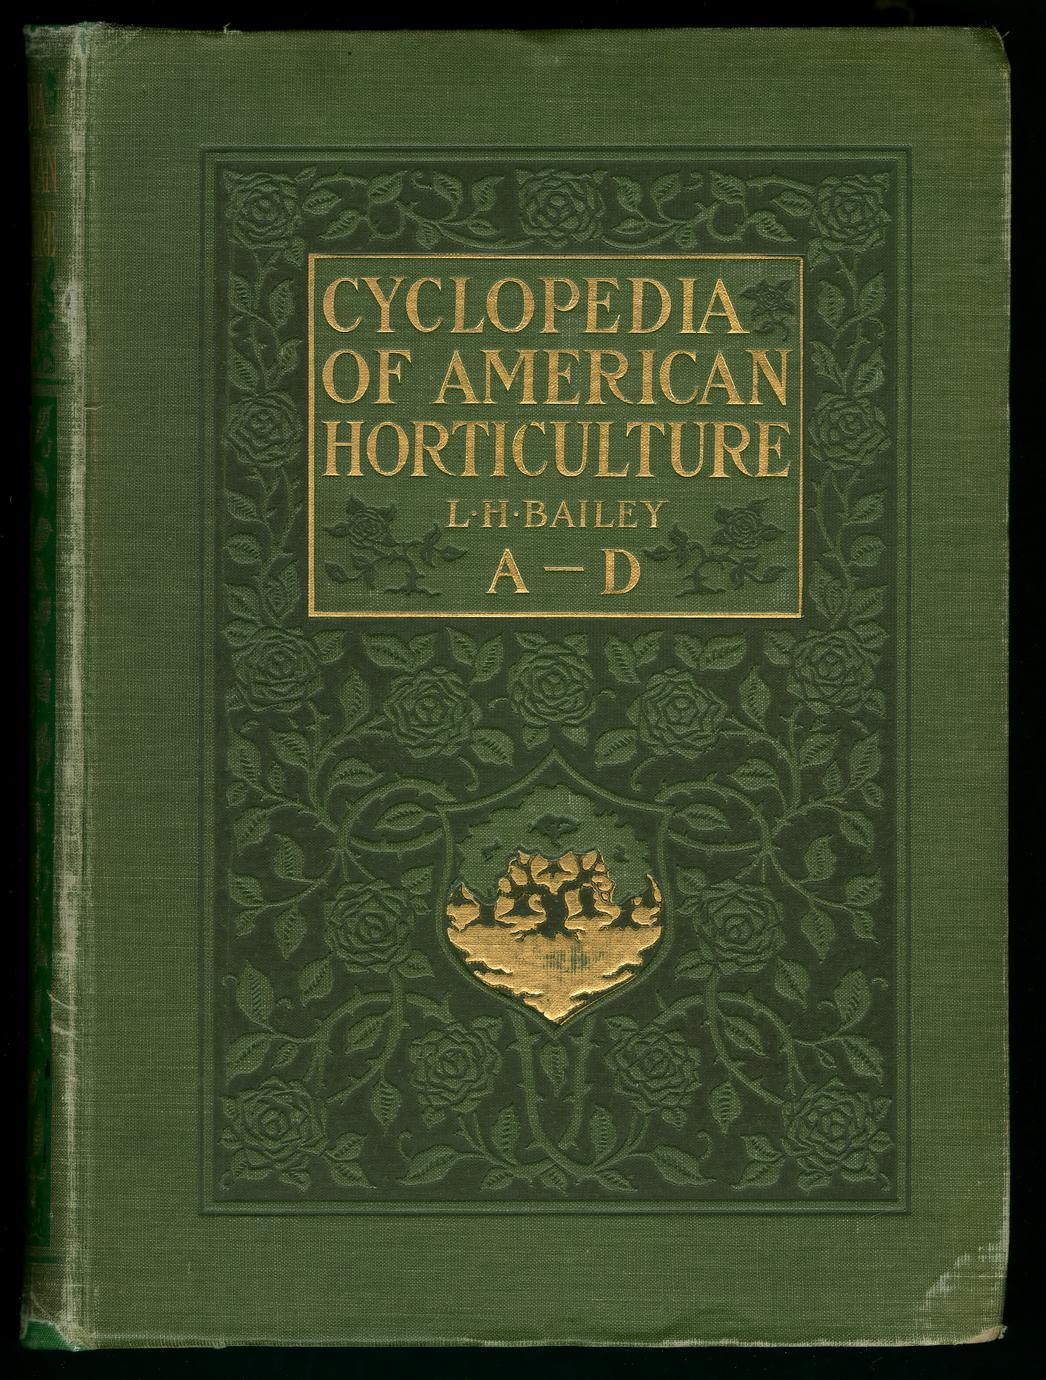 Cyclopedia of American horticulture (1 of 2)